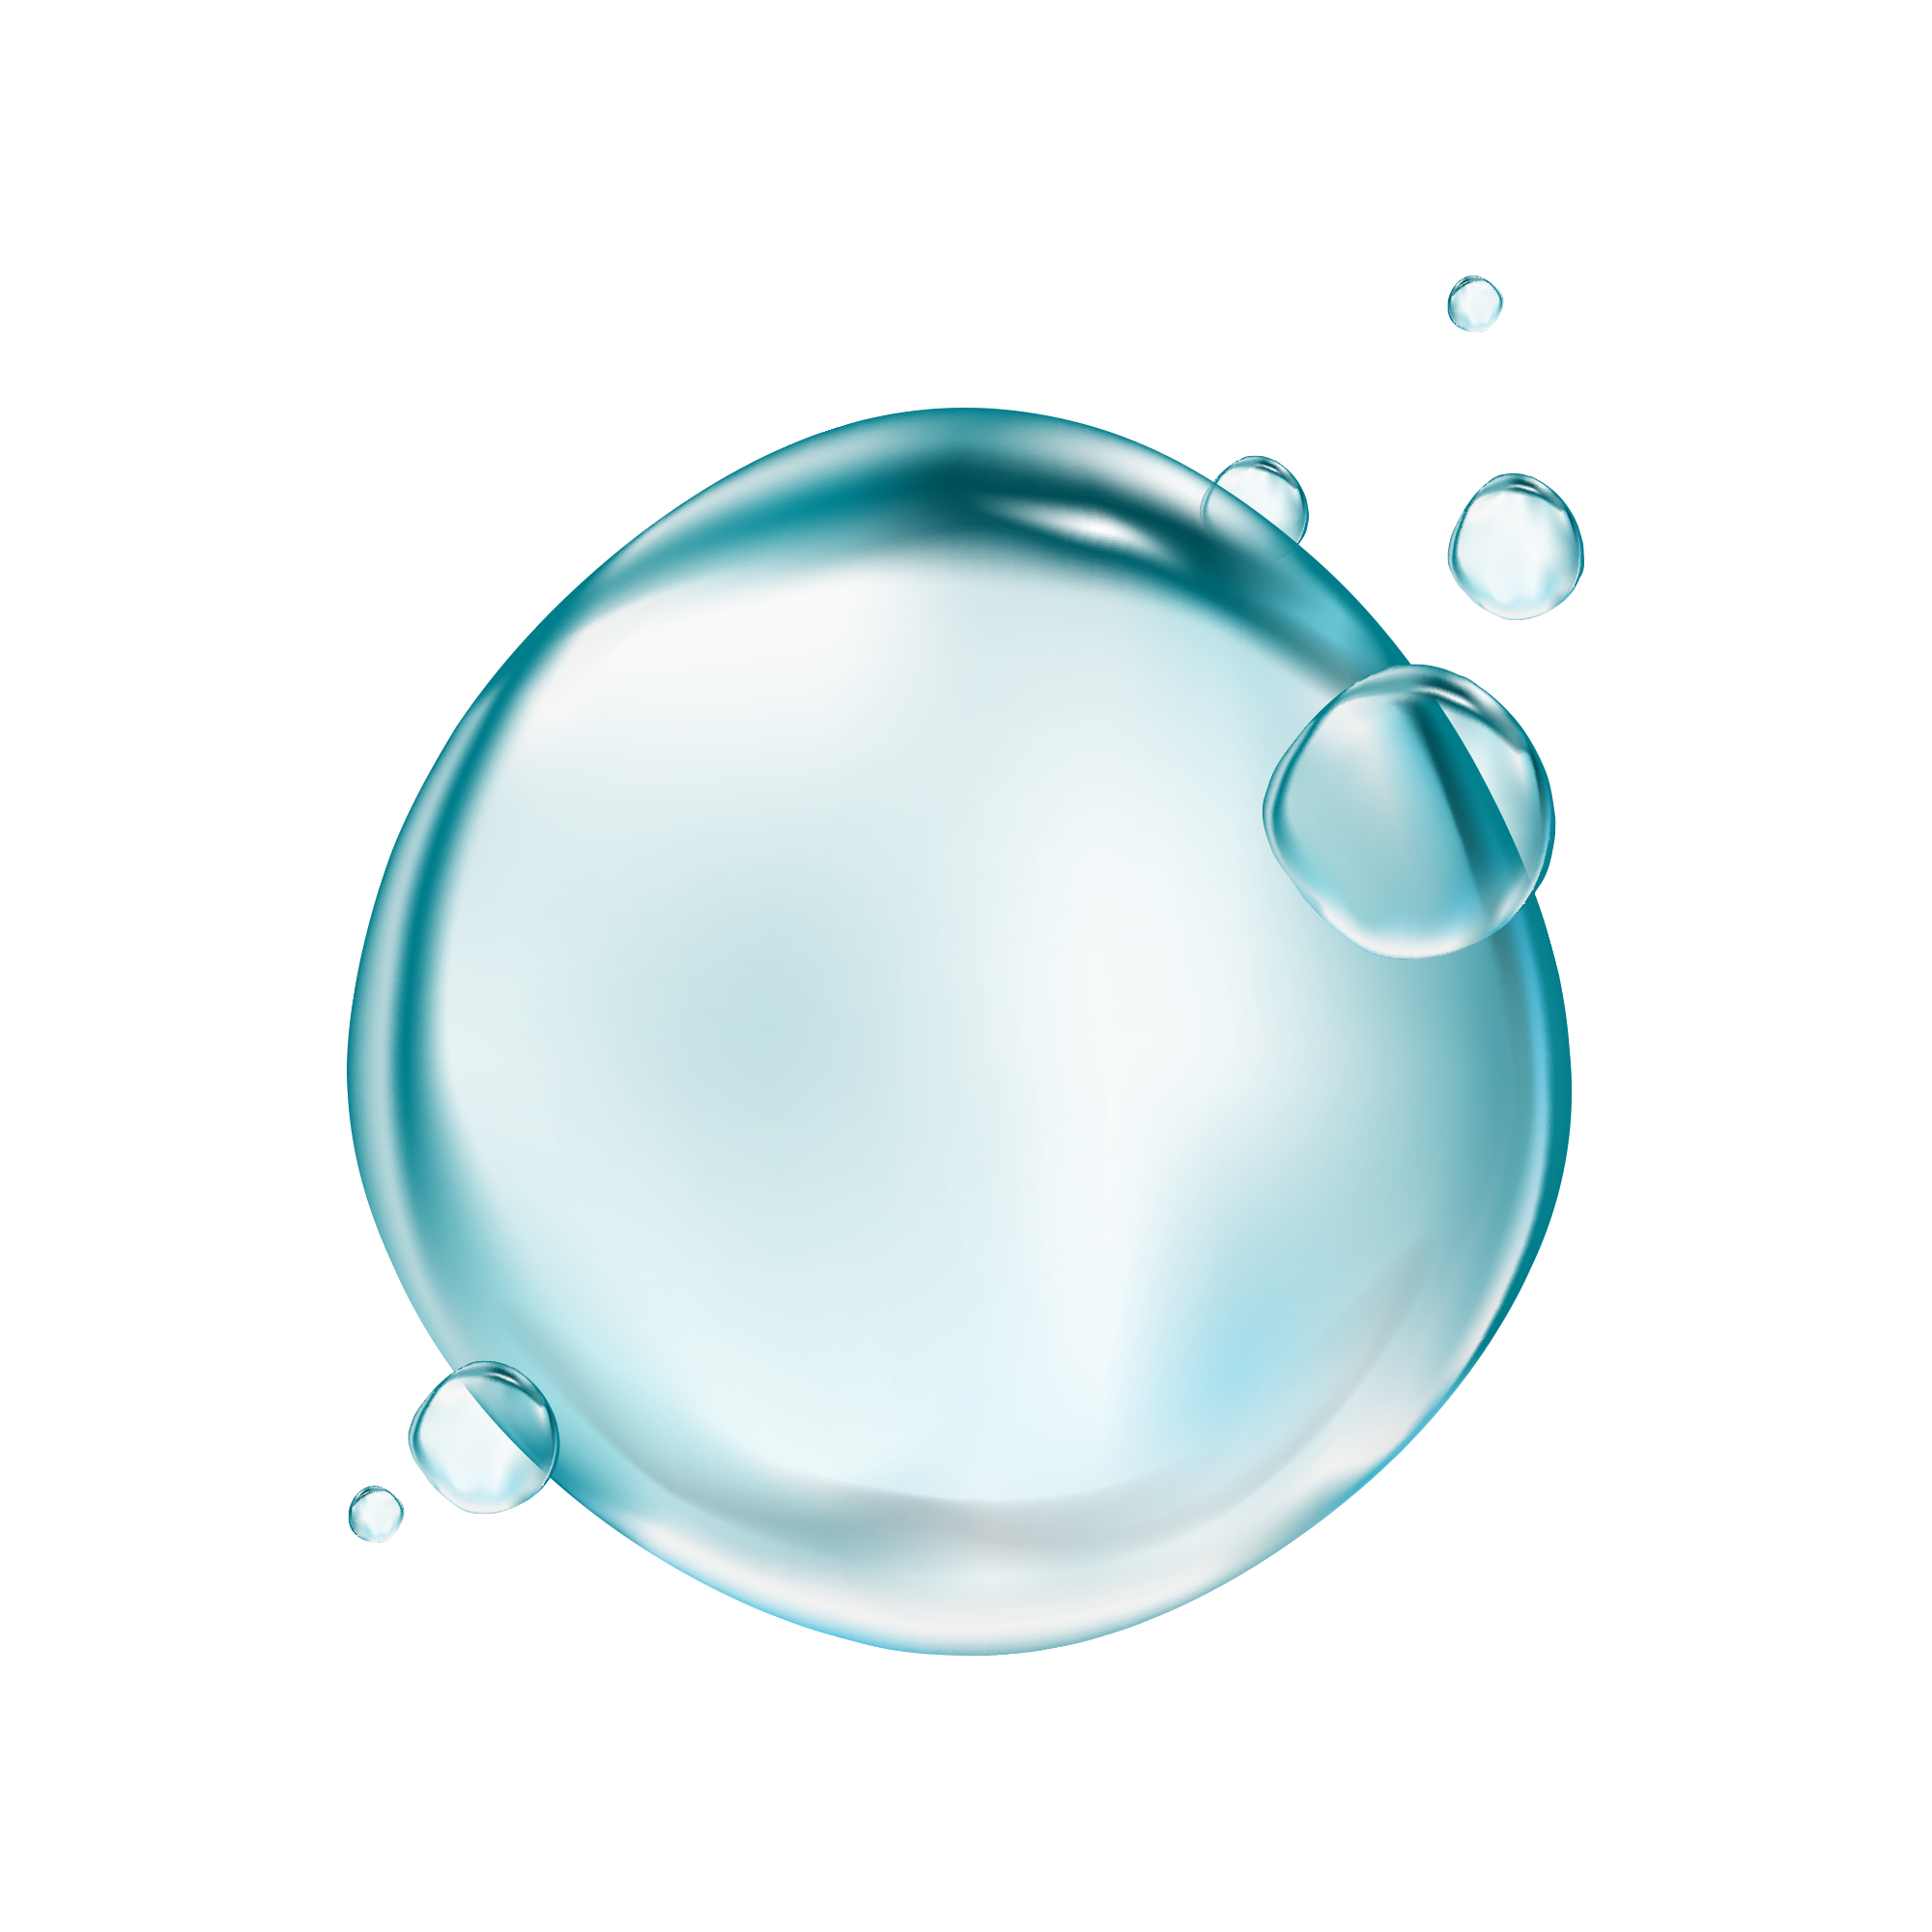 Glass bubble png. Drop transparency and translucency